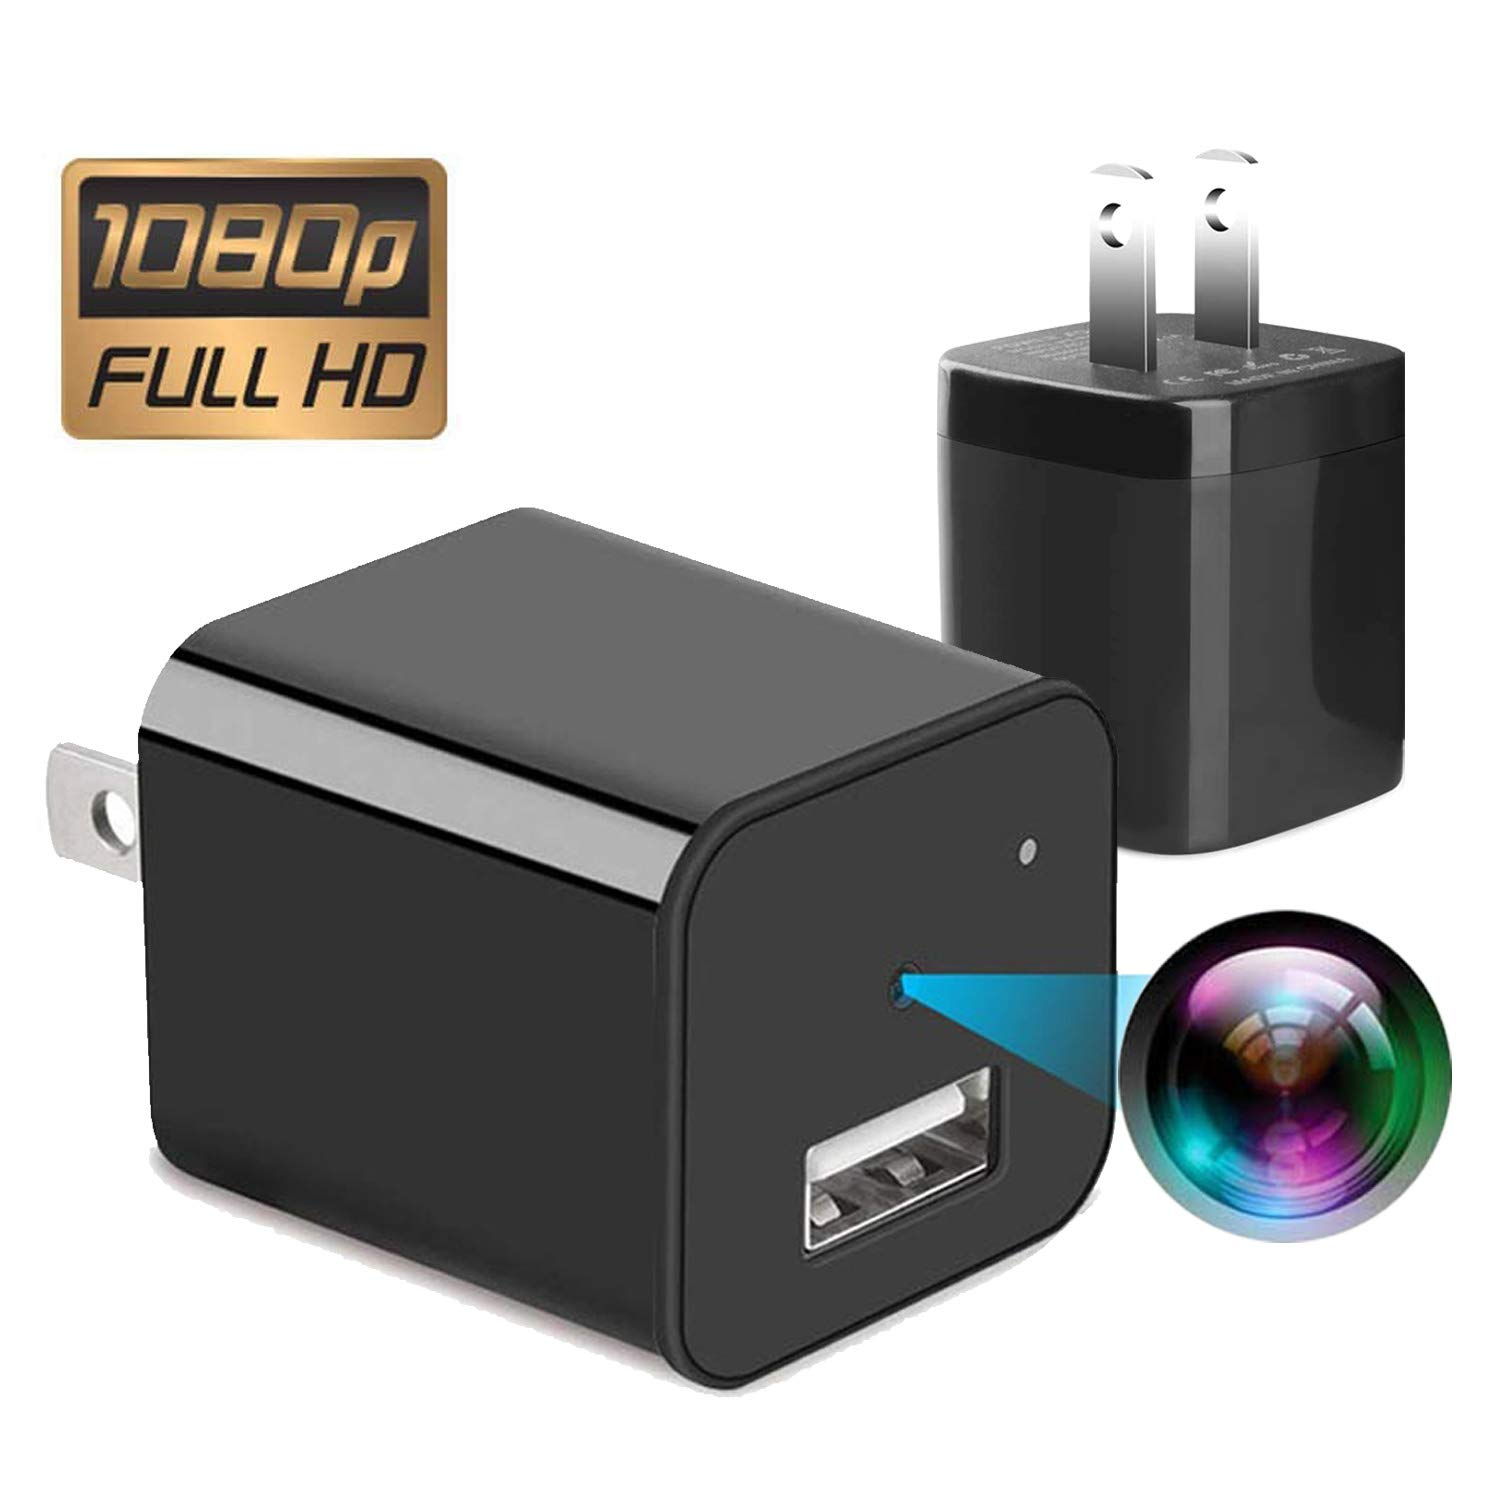 Give 32G TF Card |Spy Camera Charger | spy Cameras | Hidden Camera | spy cam | Nanny cams |Hidden Spy Camera | cam Hidden | Hidden Cam | Surveillance Camera Full HD | USB Charger Camera 1080p by XJW